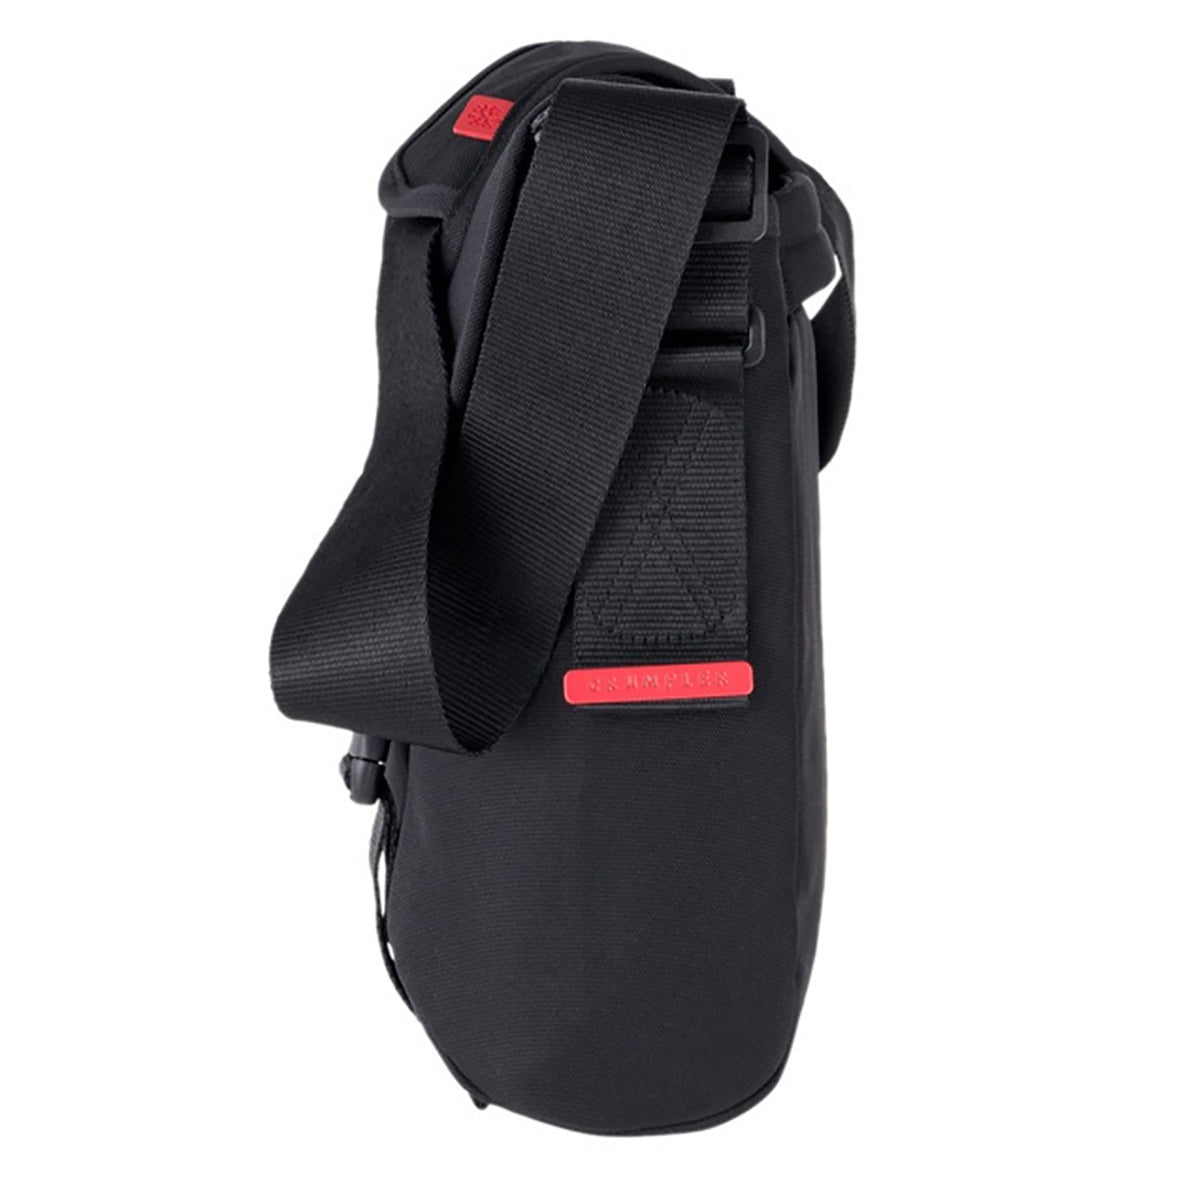 Crumpler: Skivvy Commuter Style Shoulder Bag - Black